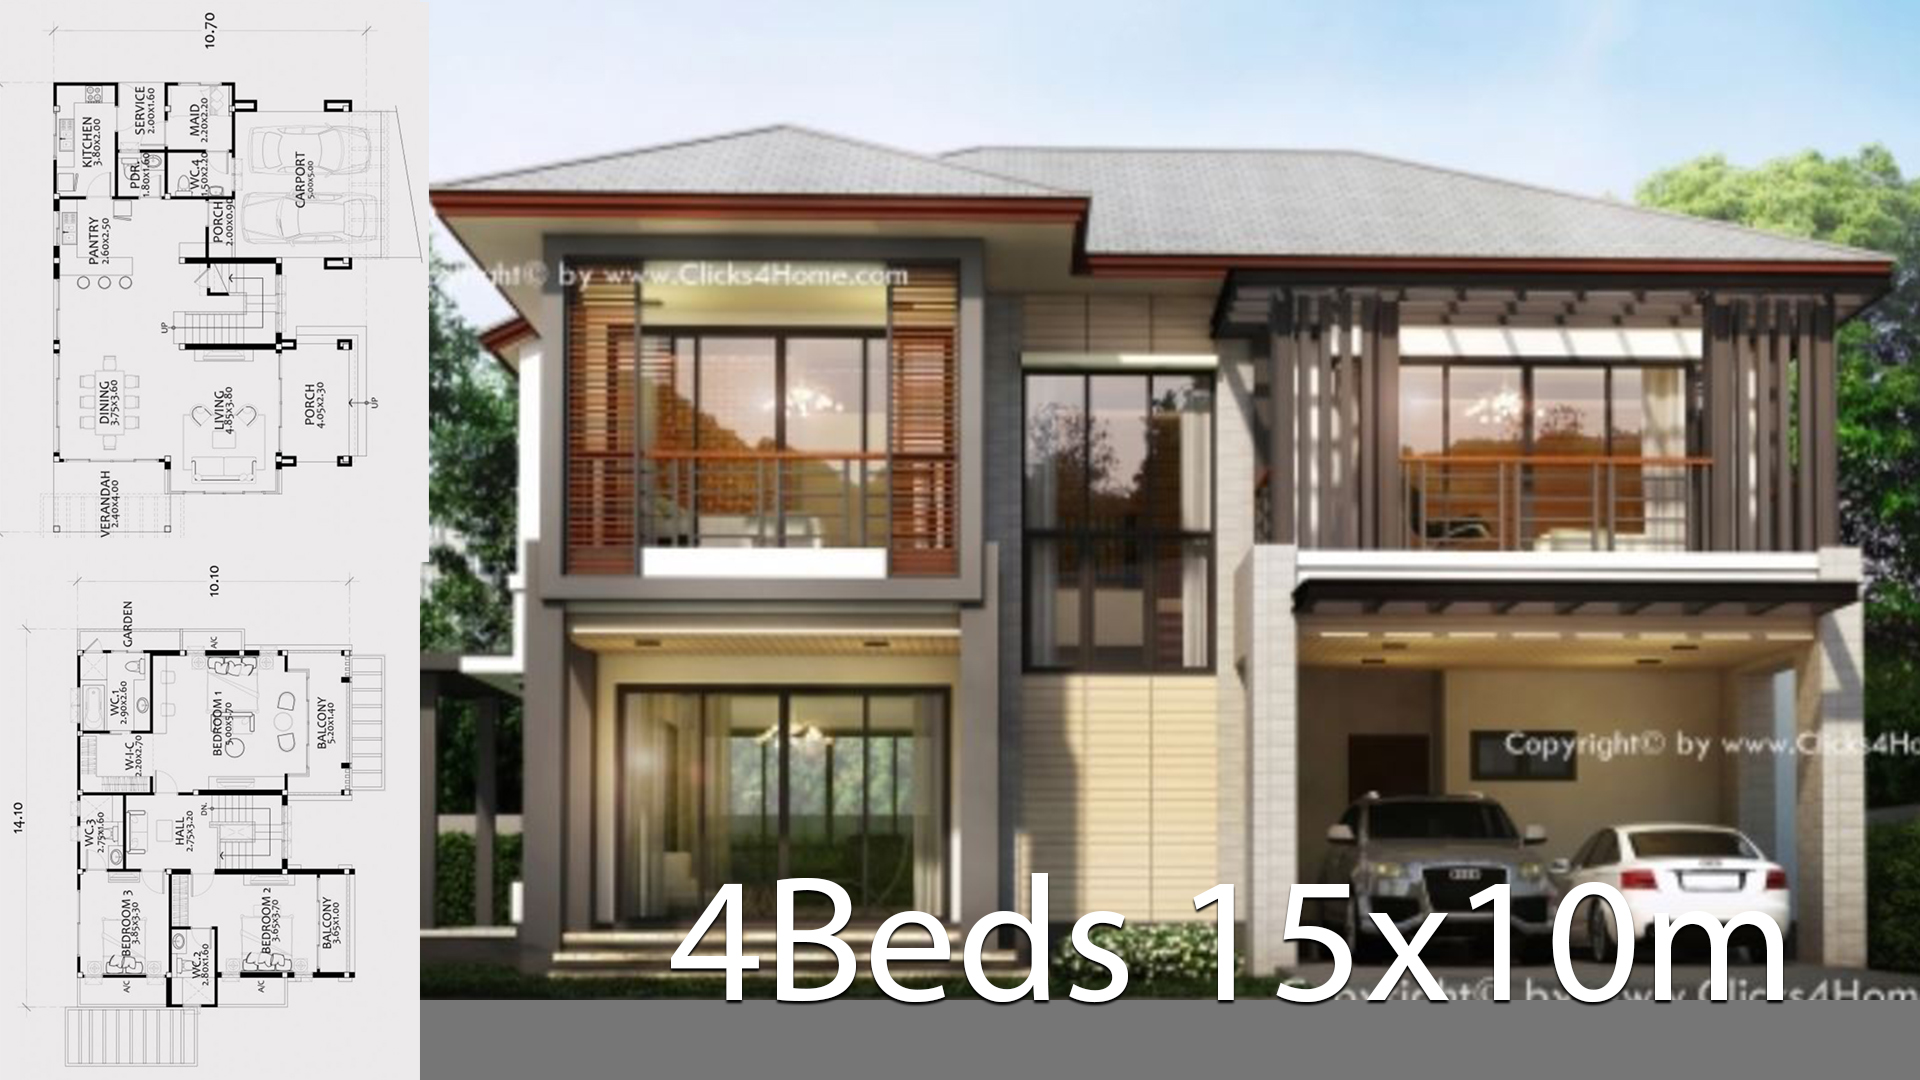 Home design plan 15x10m with 4 bedrooms - Home Ideas